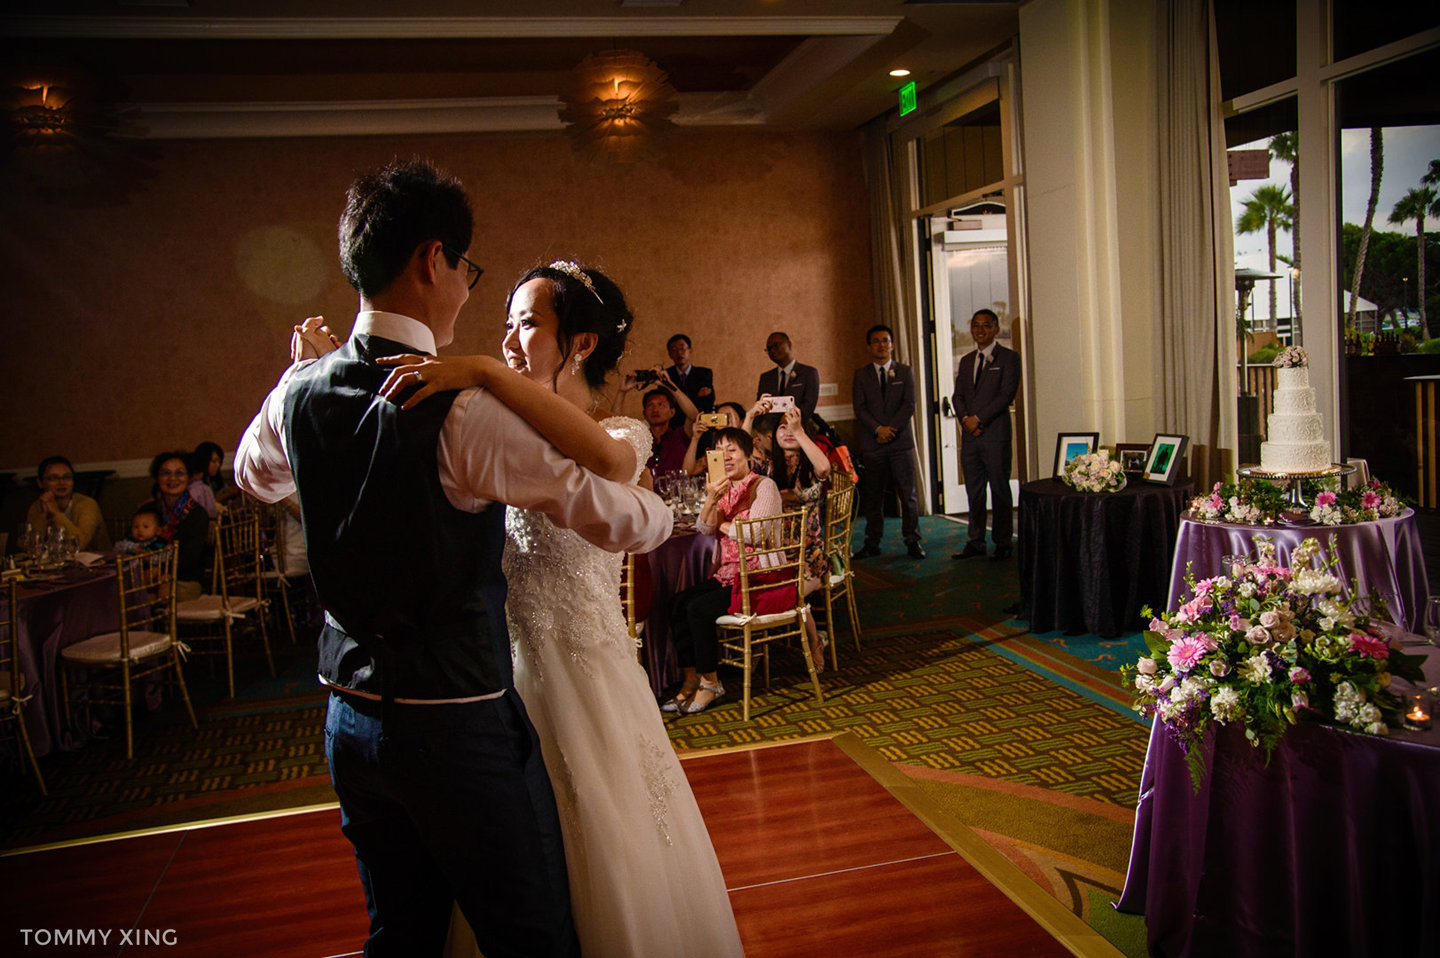 Paradise Point Resort Wedding Xiaolu & Bin San Diego 圣地亚哥婚礼摄影跟拍 Tommy Xing Photography 洛杉矶婚礼婚纱照摄影师 230.jpg